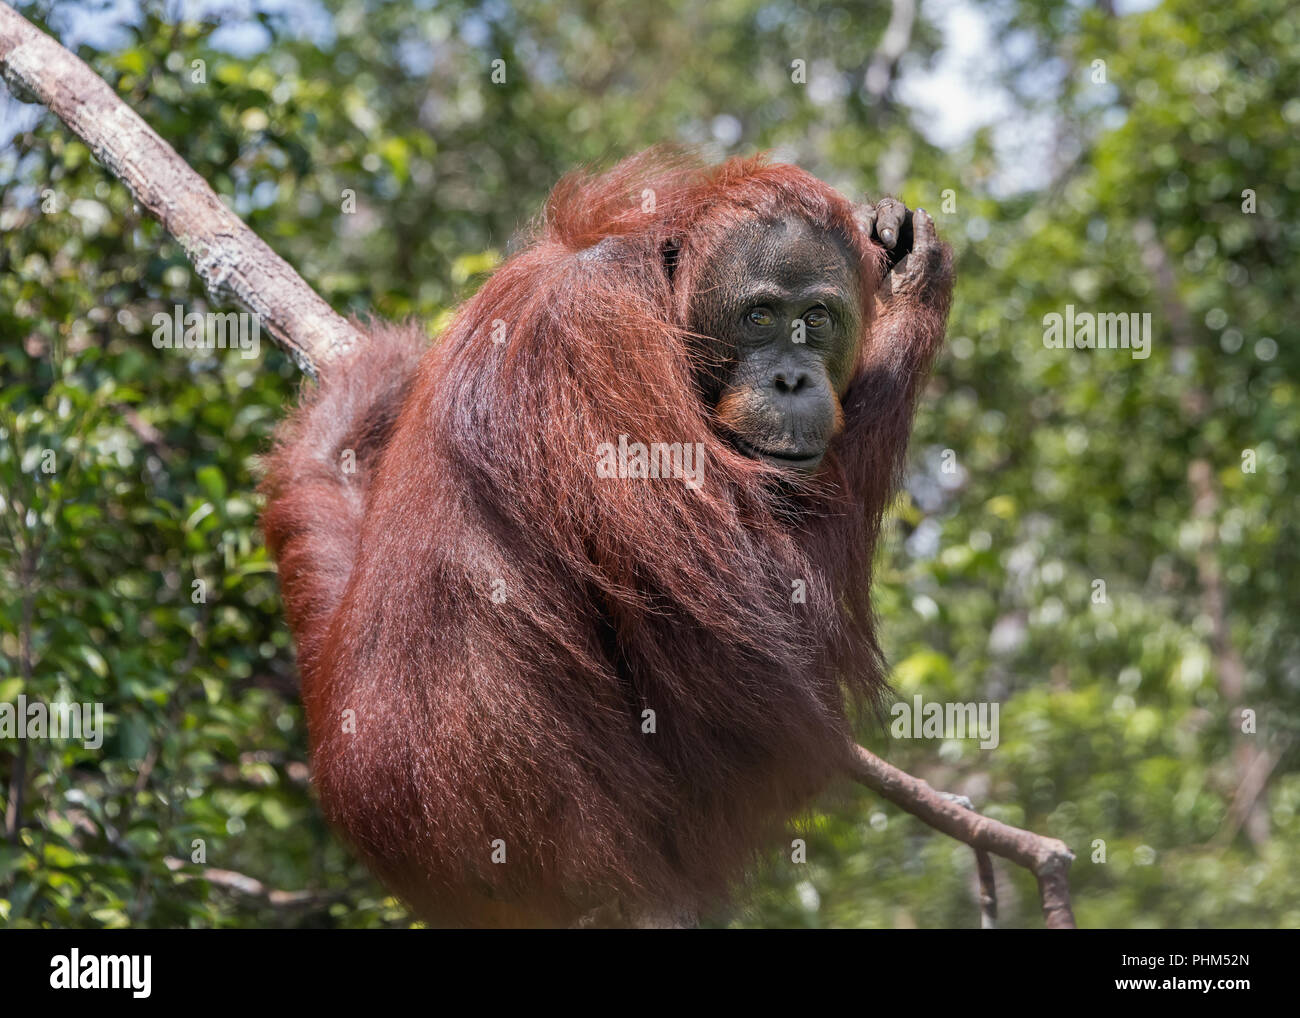 Wild orangutan curled up at the end of a branch by the Sekonyer River, Tanjug Puting NP, Indonesia - Stock Image